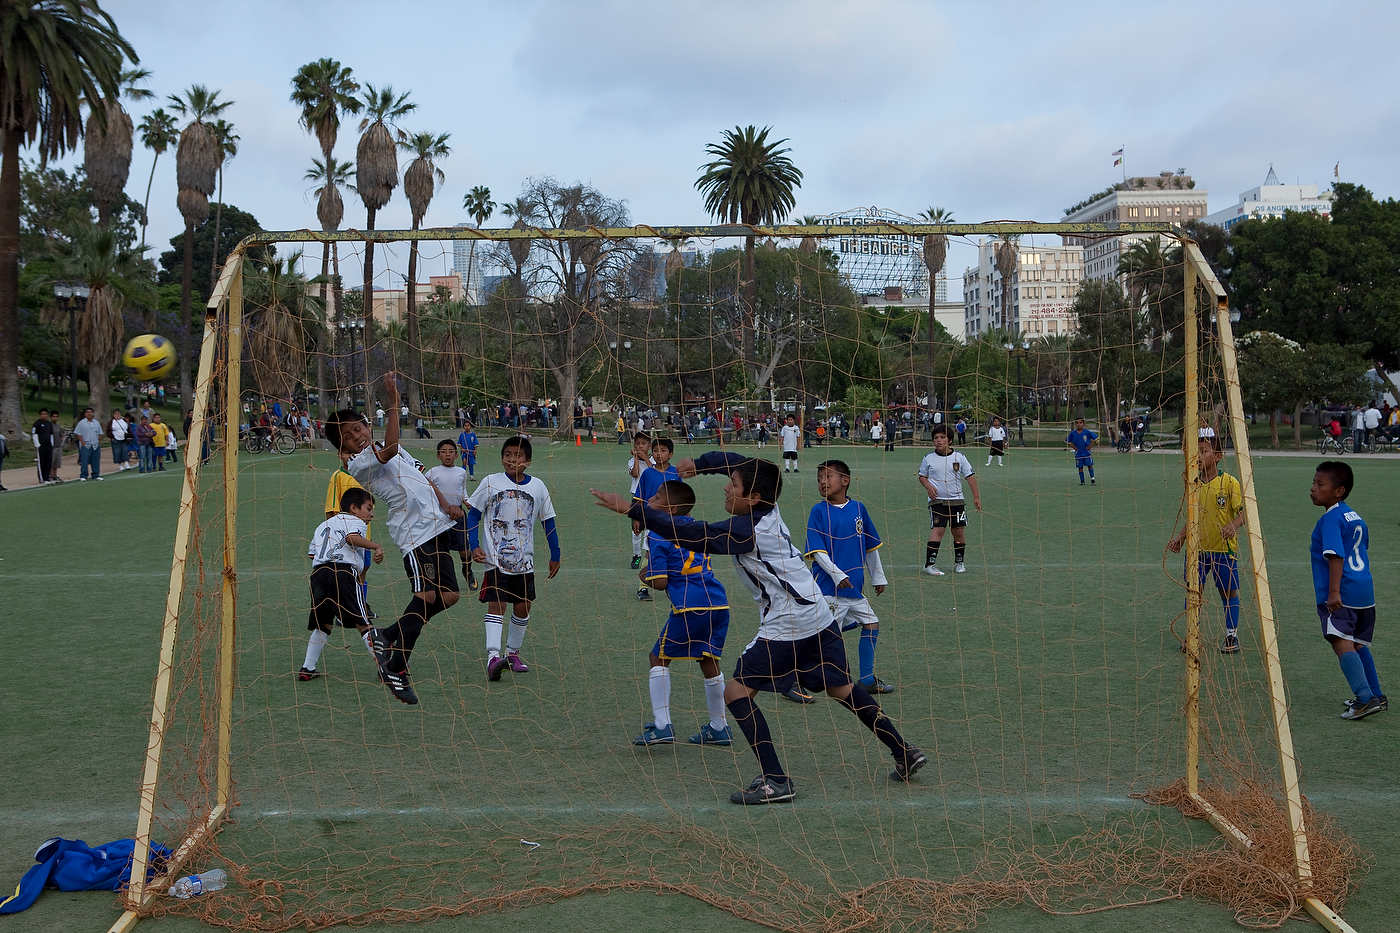 Soccer game in Mac Arthur Park, a Latino immigrant neighborhood, Line 720.